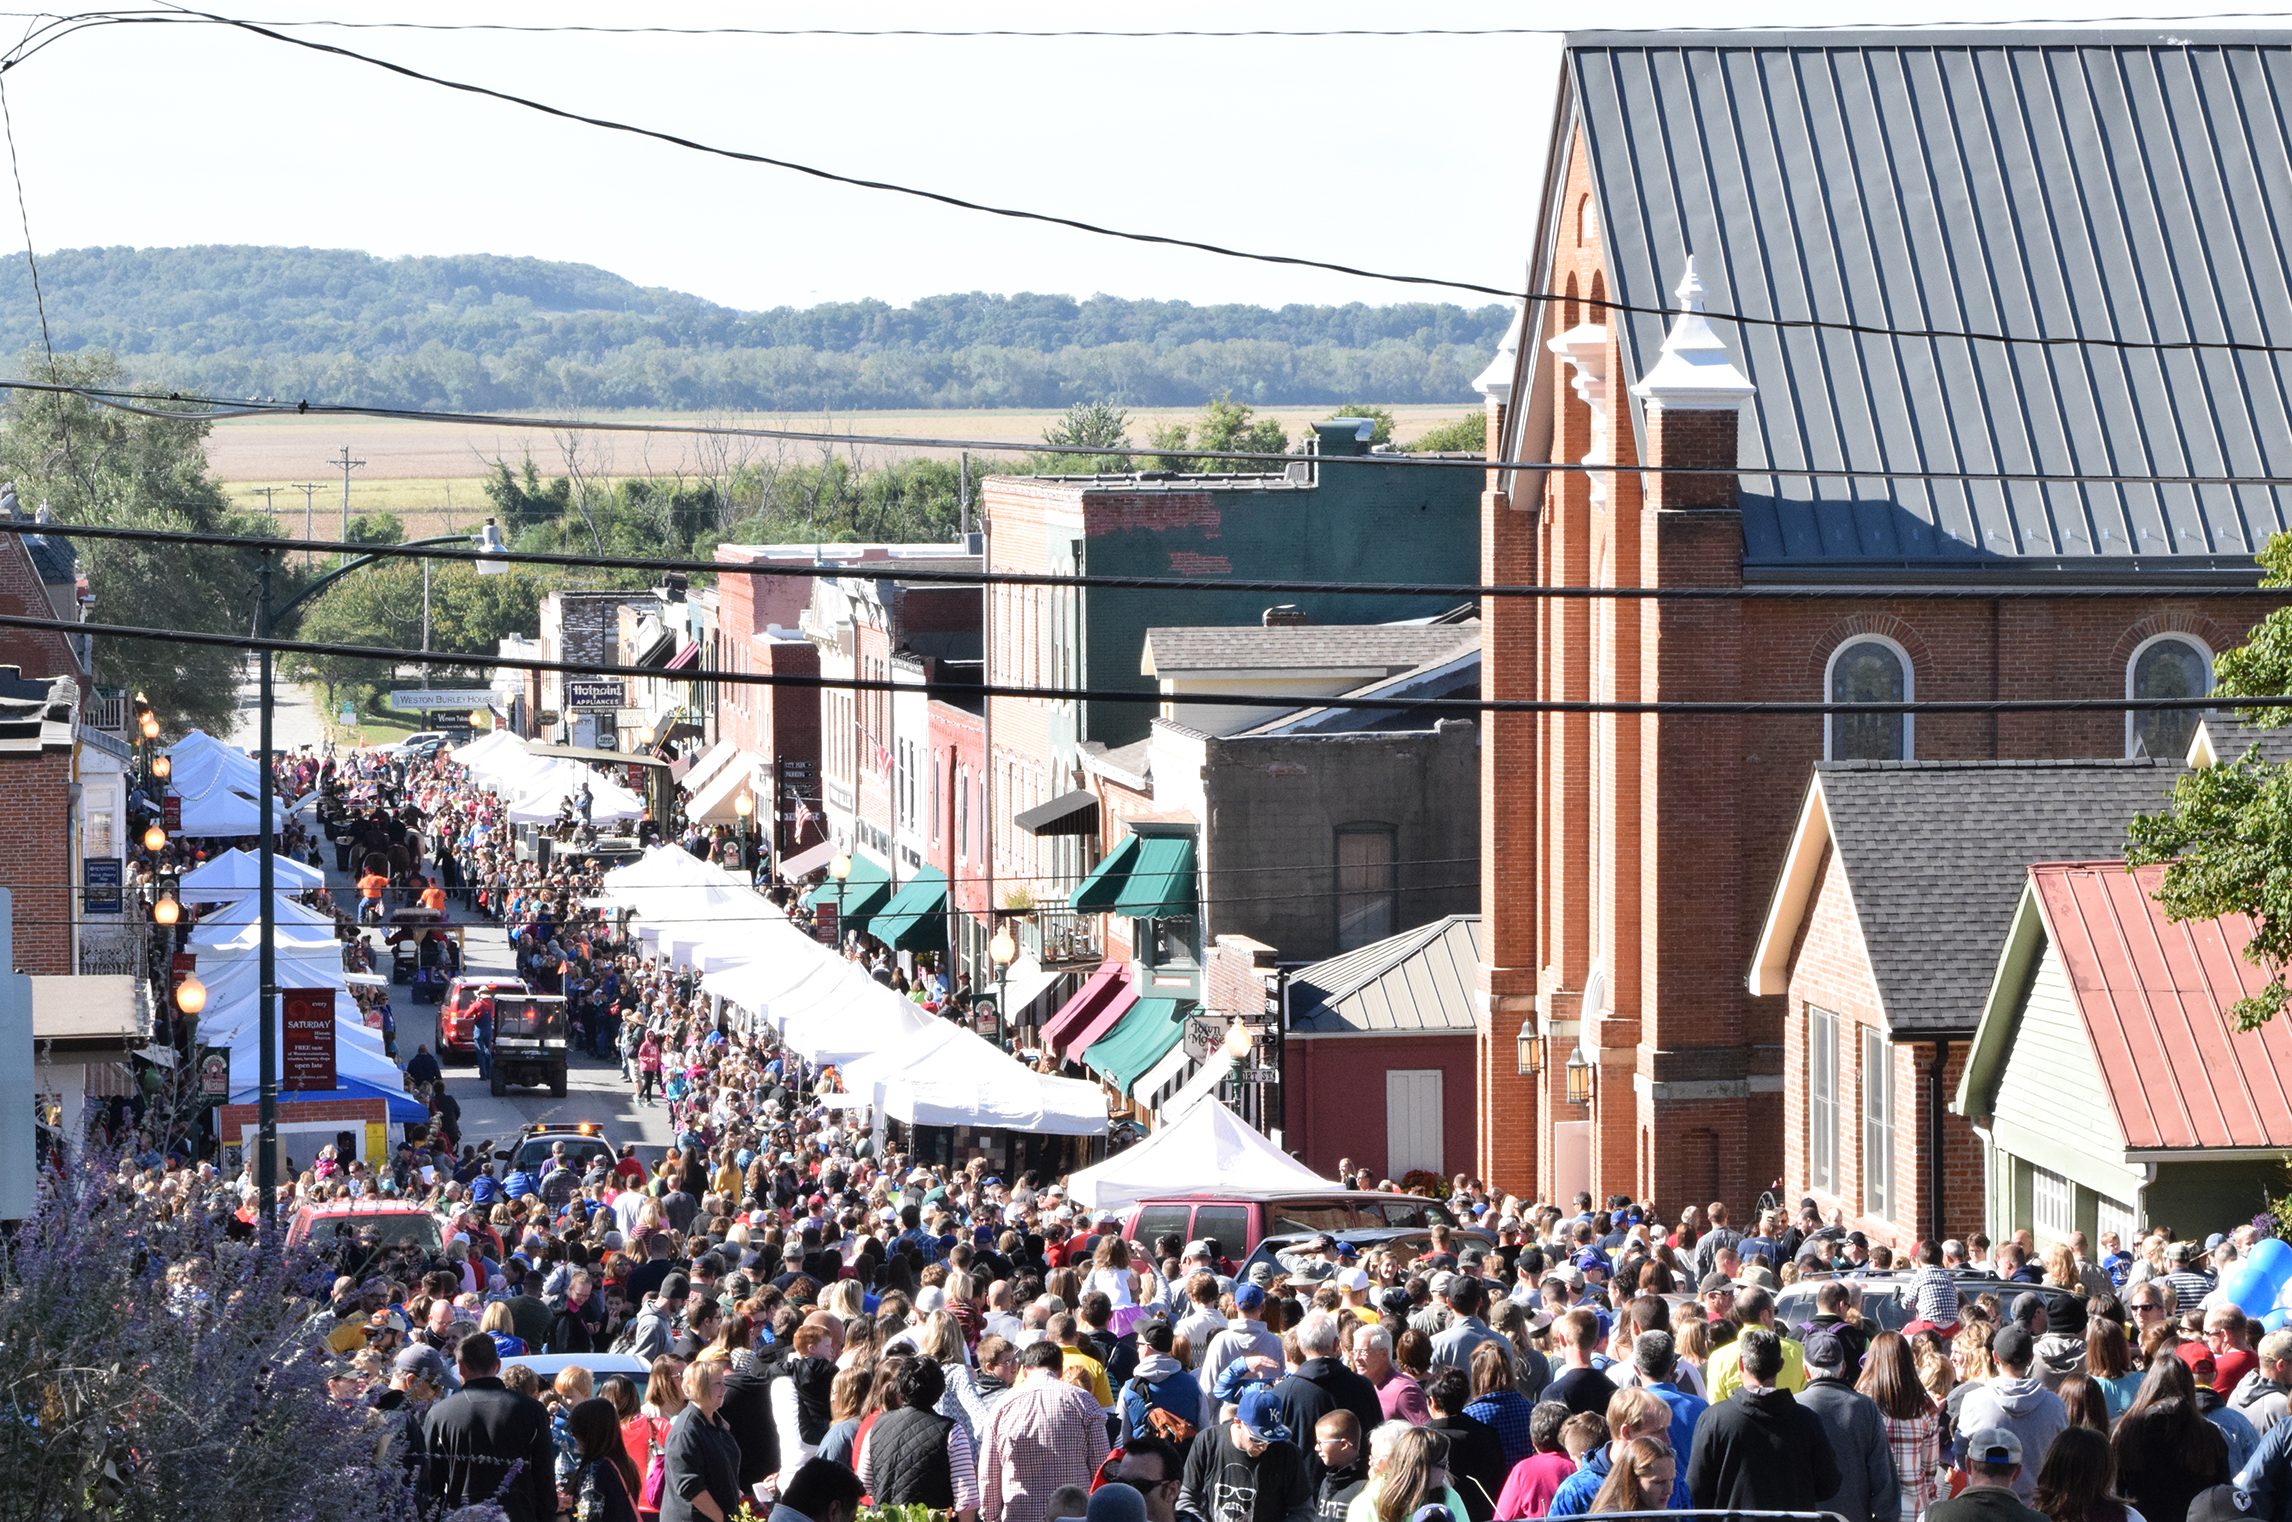 Citizen file photo People at last year's Applefest crowded Main Street in Weston, Mo. The annual festival is scheduled for this weekend, Saturday and Sunday, Oct. 1-2, and expects to continue bringing a large number of visitors to the city.